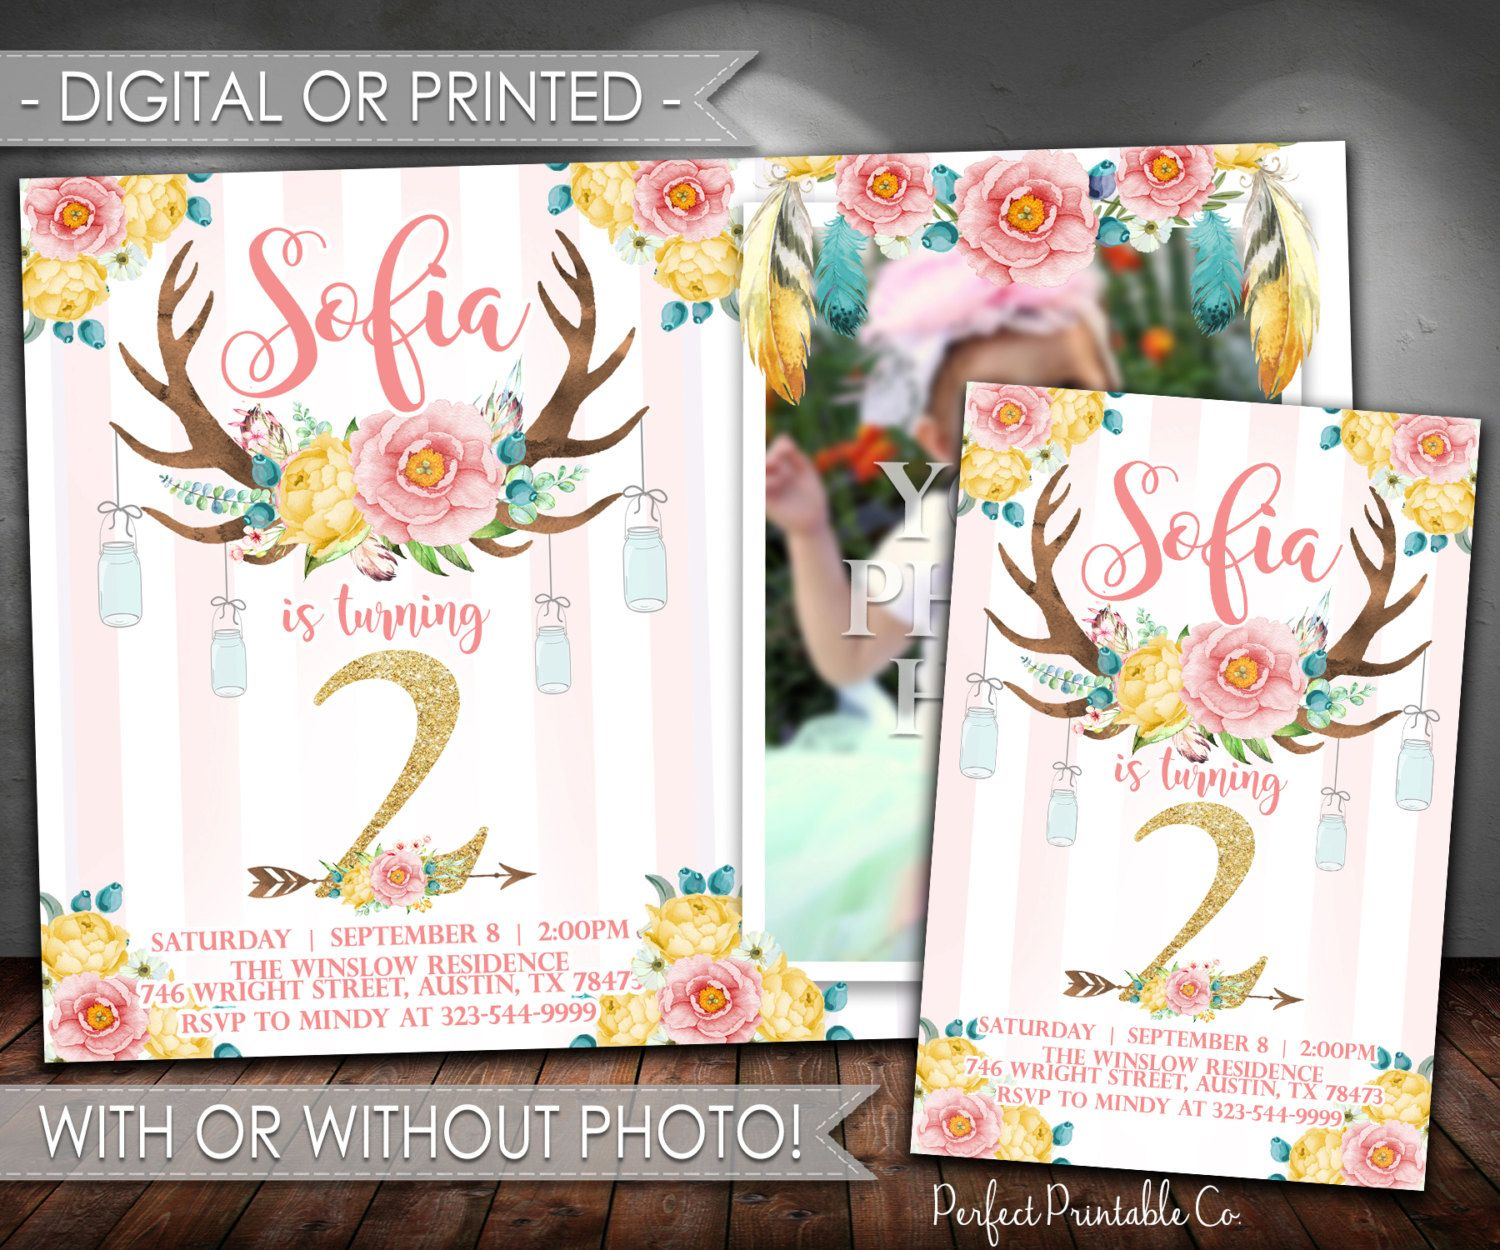 happy birthday invitation pictures%0A Antler Invitation  Pink and Gold Antler Birthday Invitation  Antler Invite   Floral Antler Invitation